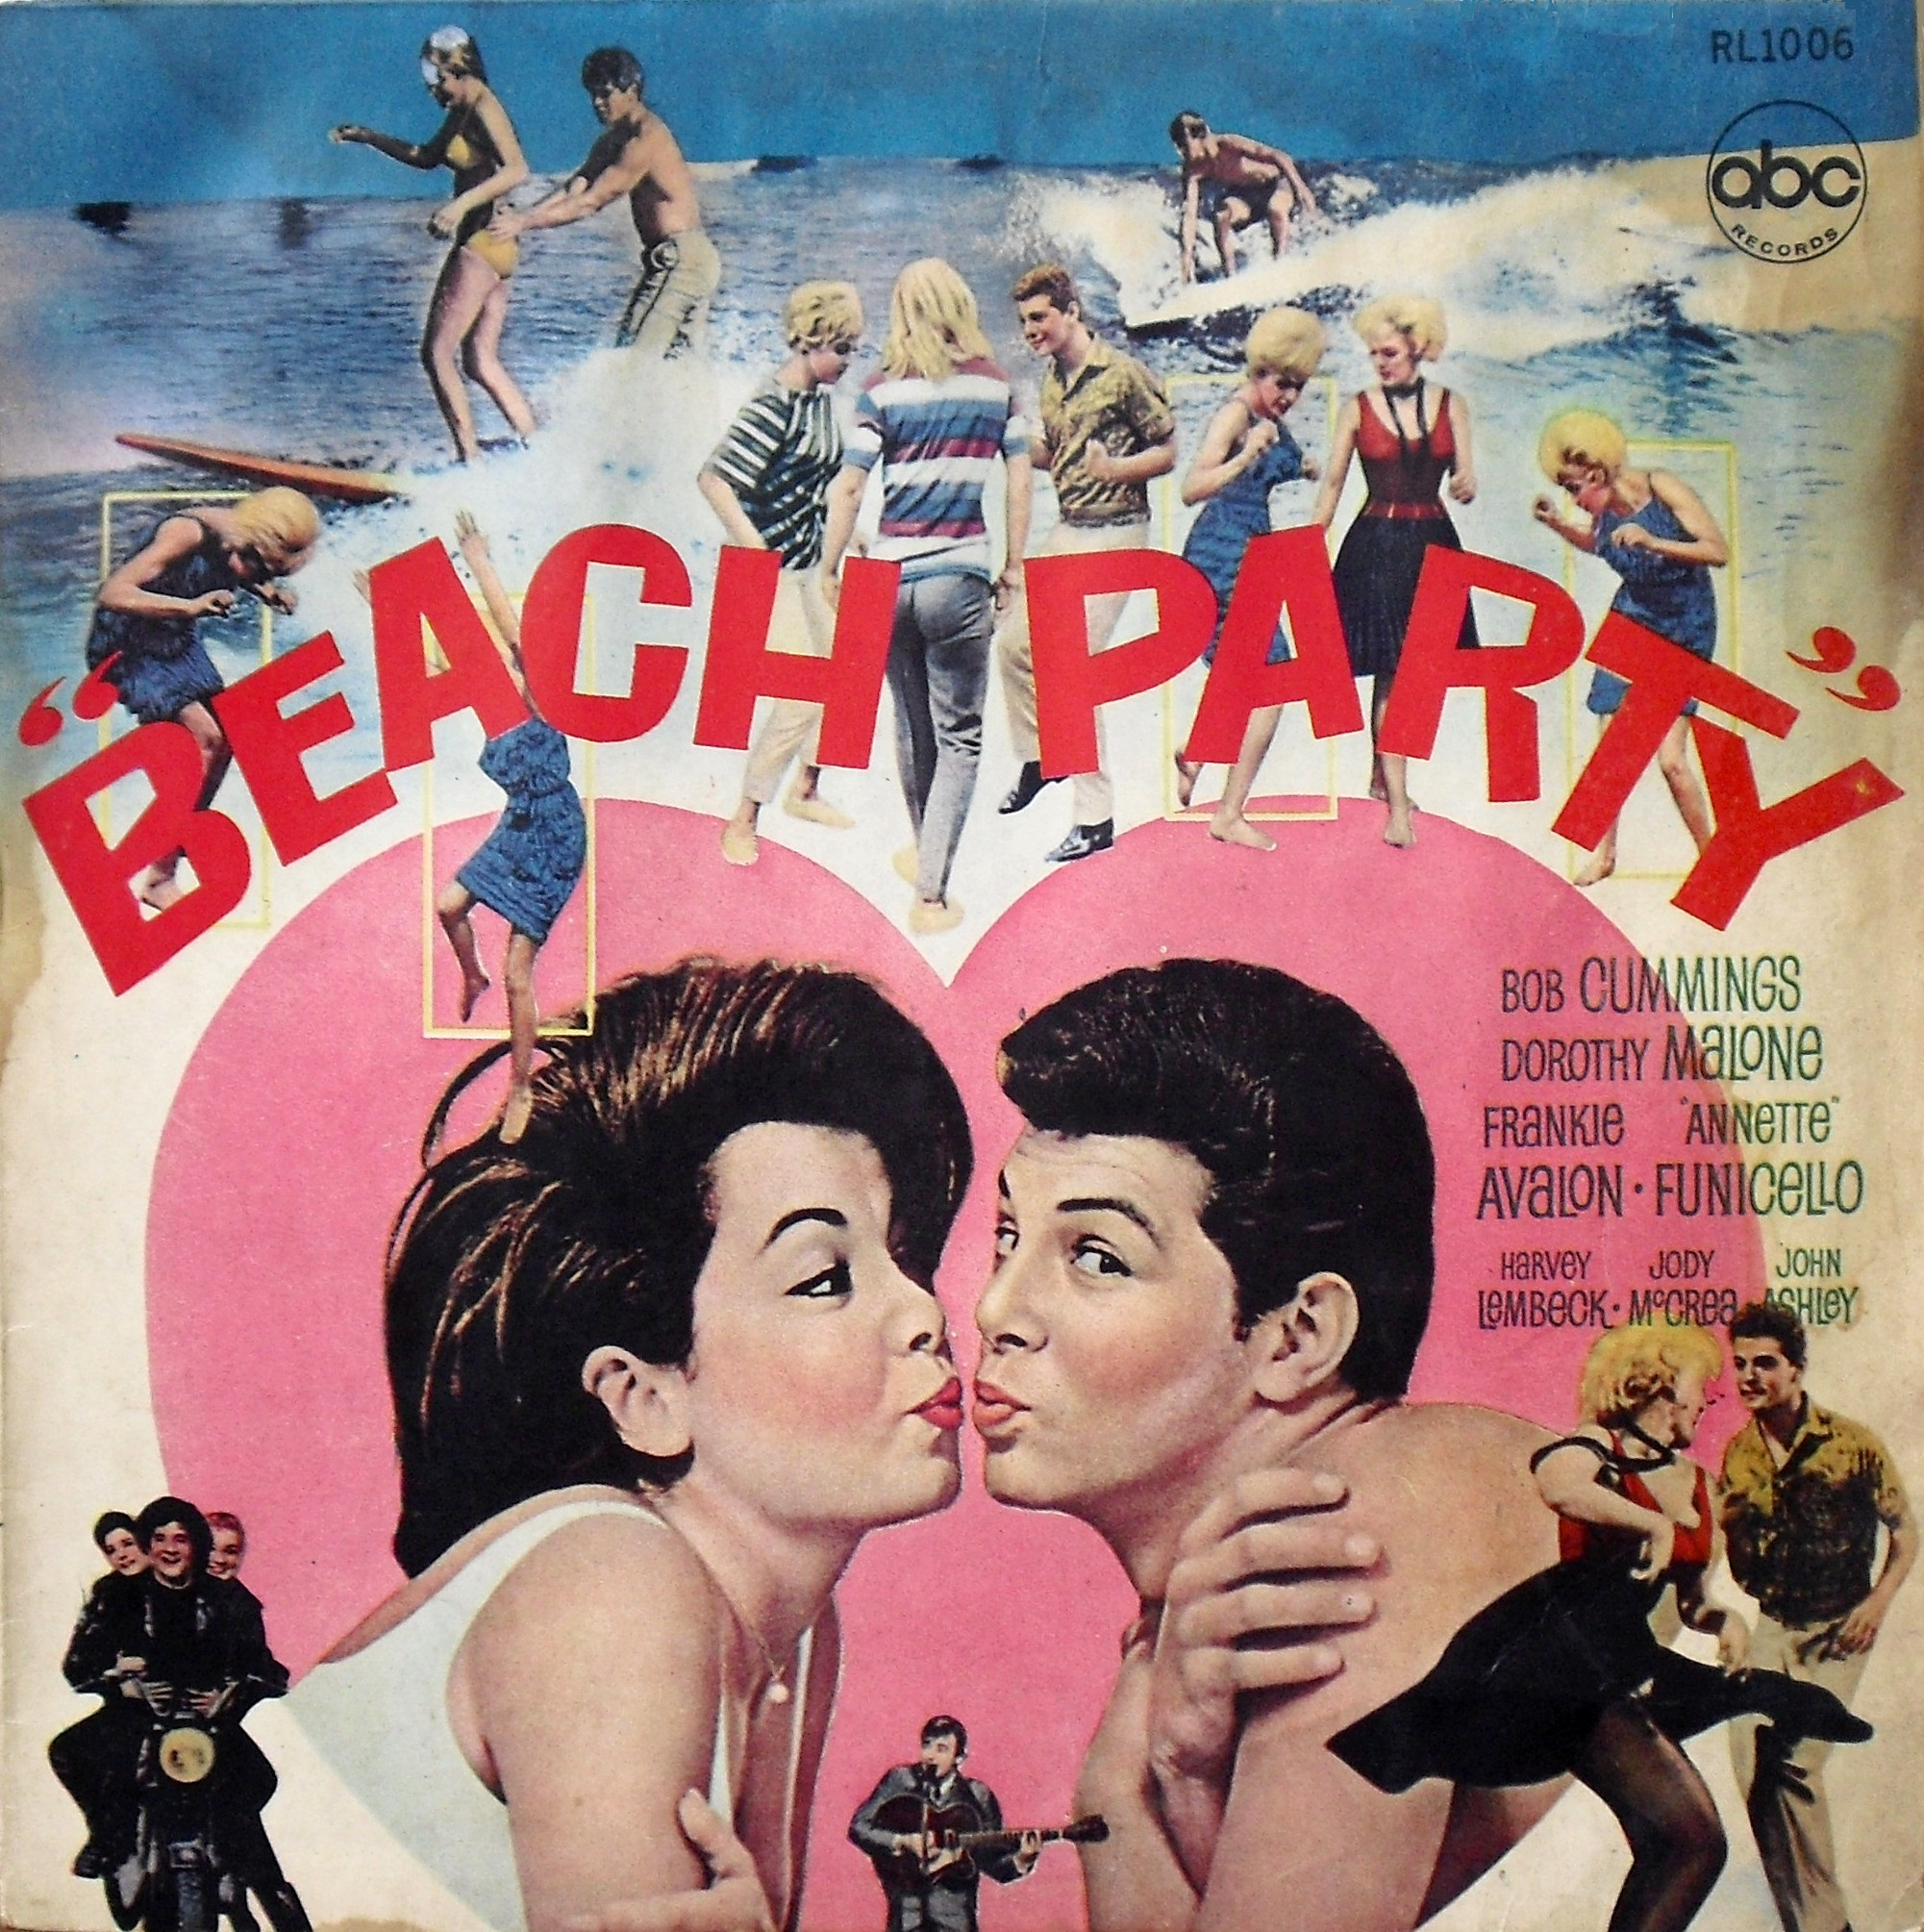 BEACH PARTY / CHARADE 012wbb2